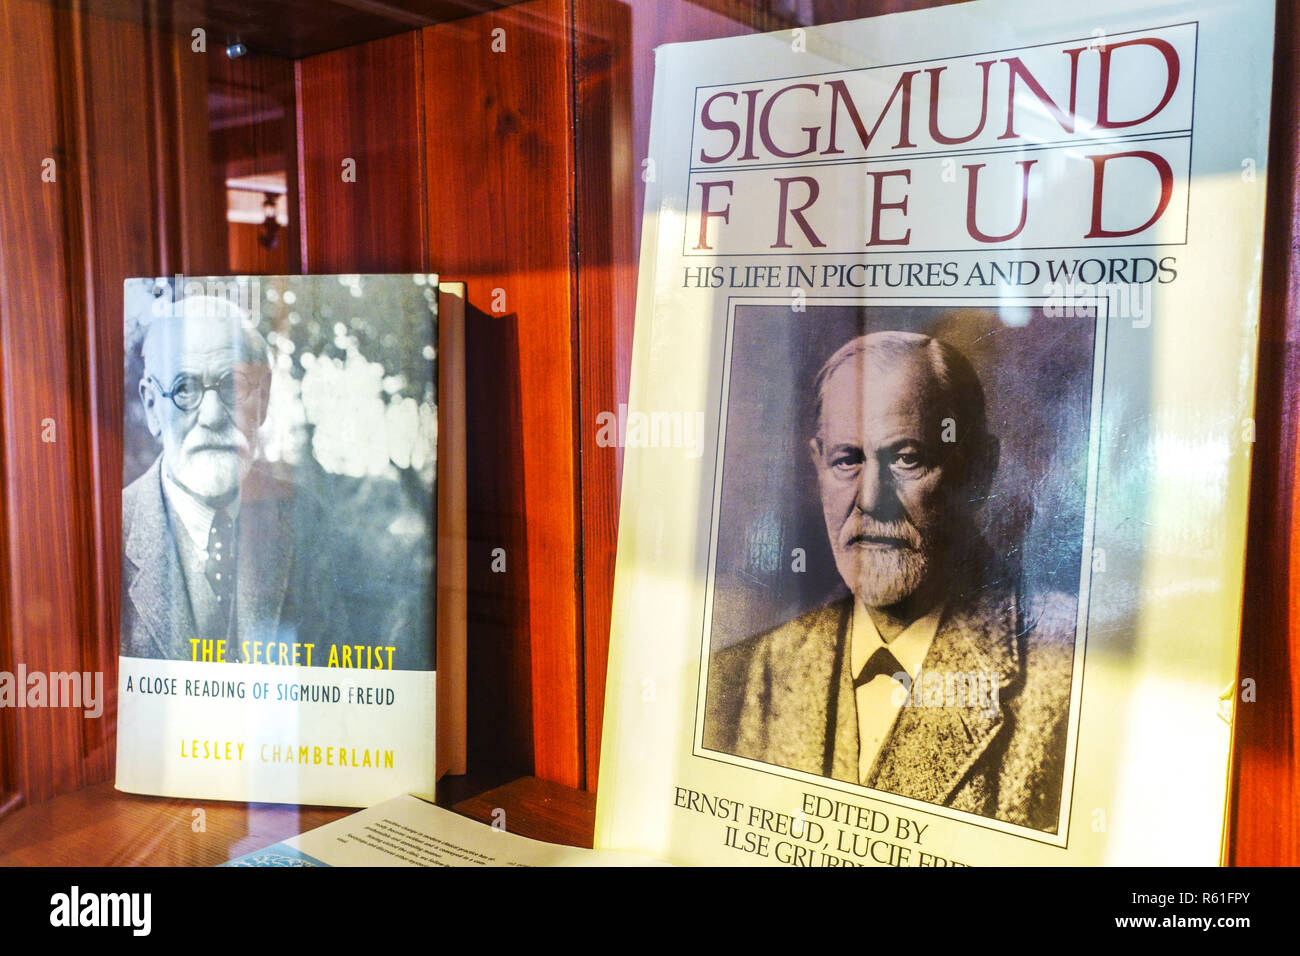 Sigmund Freud Museum in his Native House, Pribor, Northern Moravia, Czech Republic - Stock Image